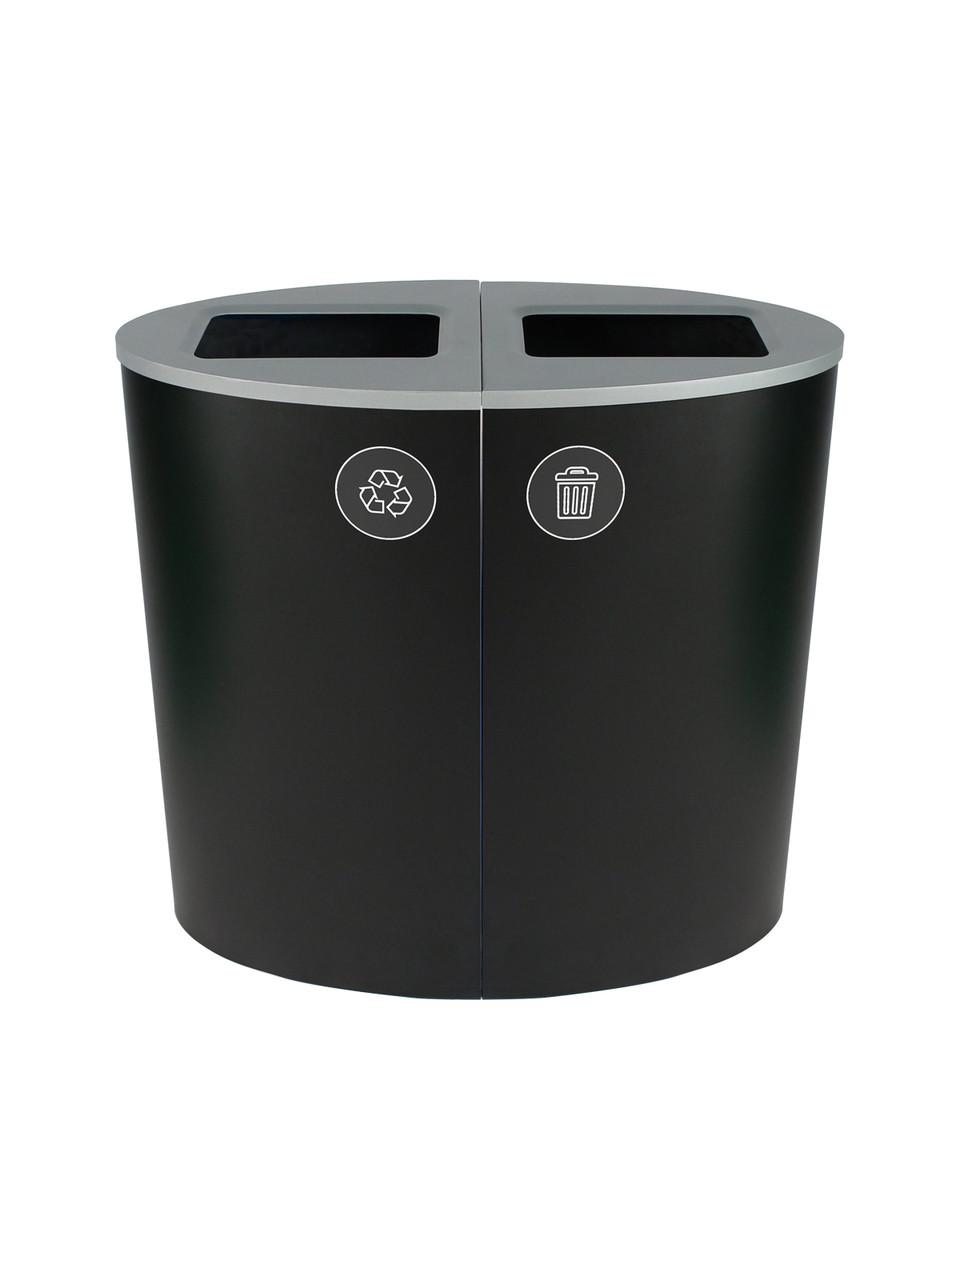 44 Gallon Spectrum Ellipse Dual Trash Can & Recycle Bin Black 8107081-44